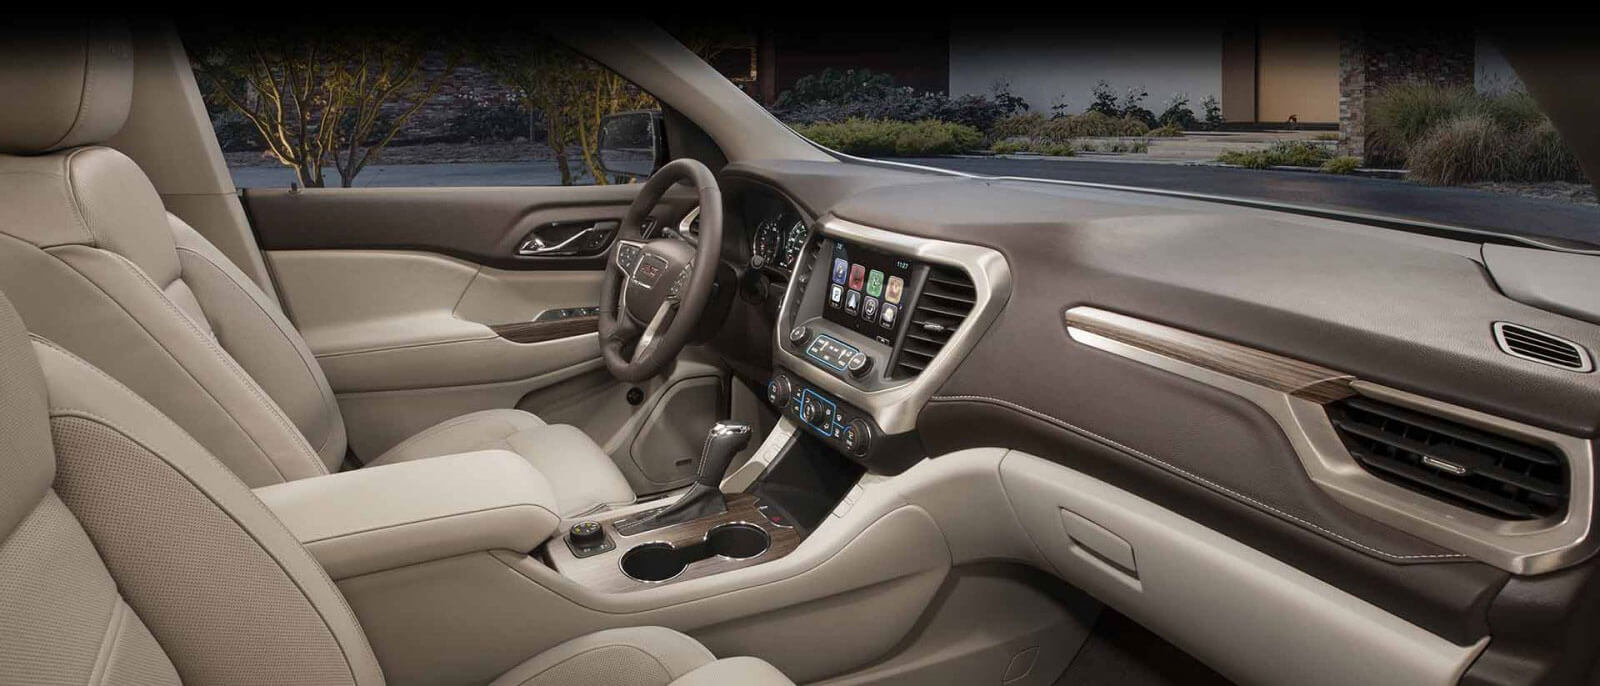 The 2017 Gmc Acadia At Westridge Buick In Lloydminster Corvette Wiring Diagram For Bose Car Speakers